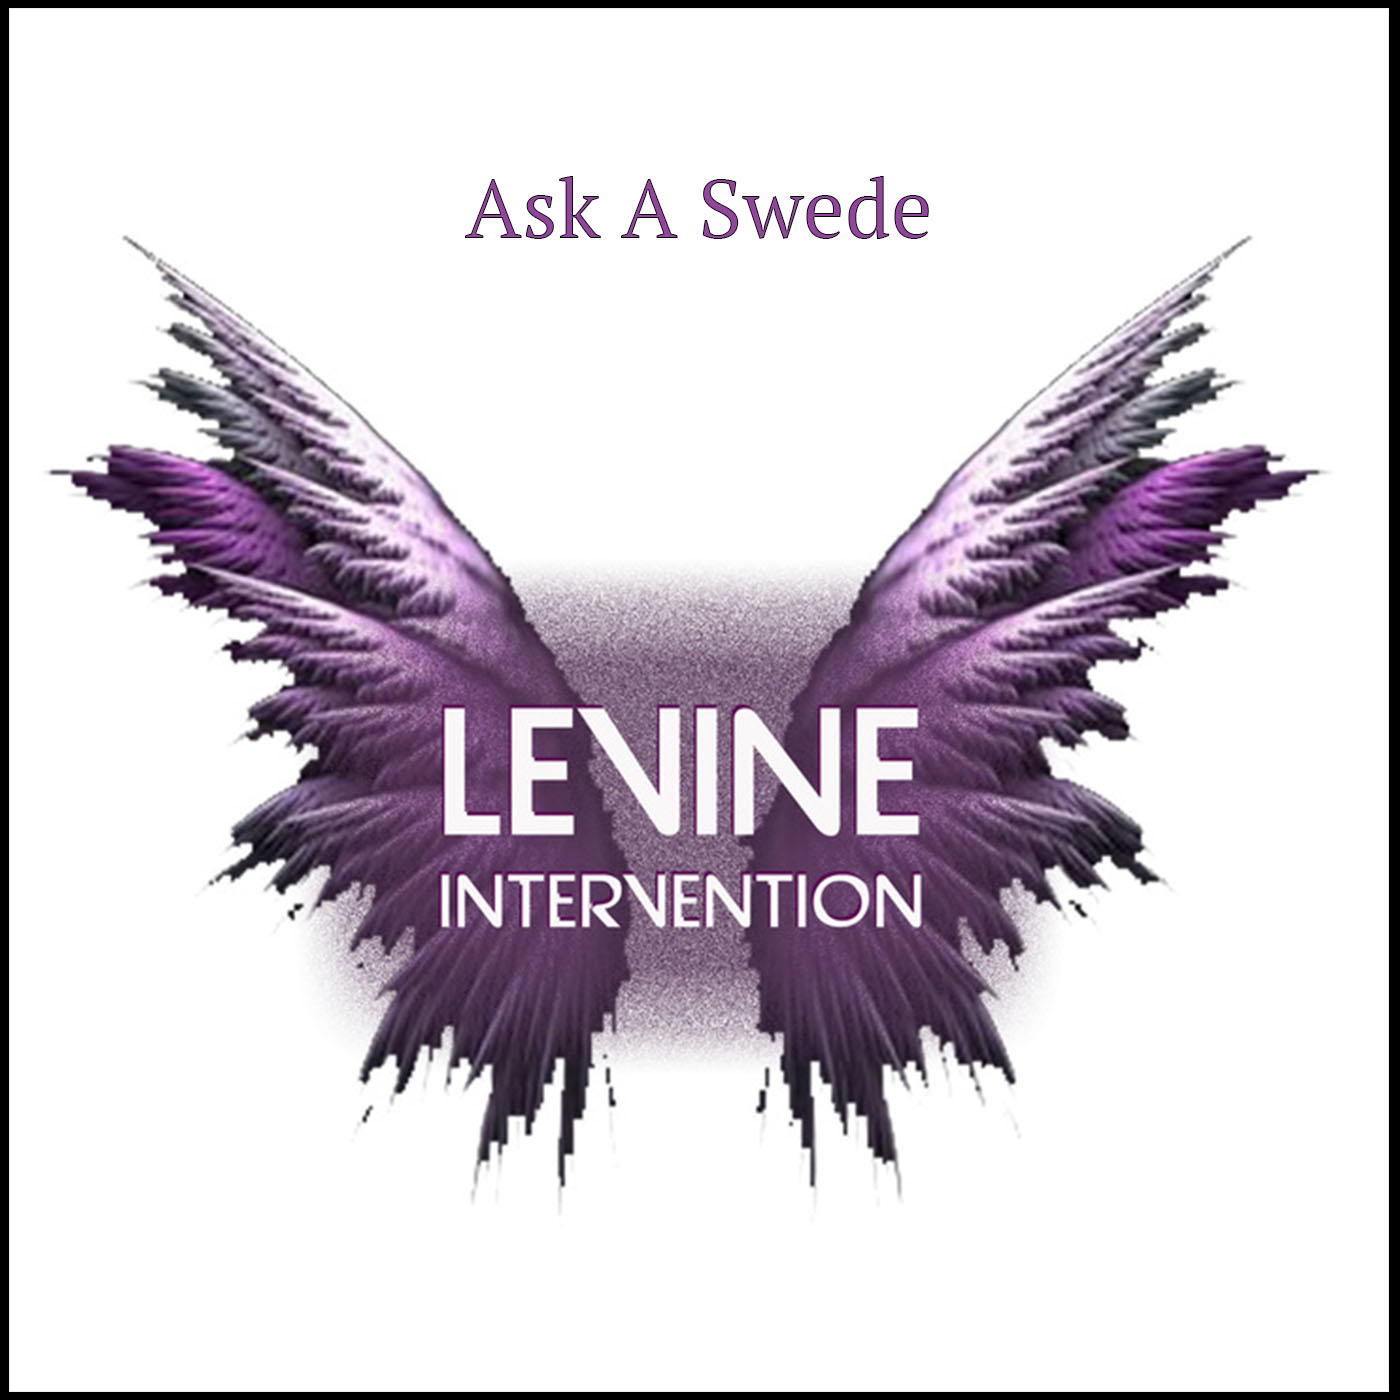 This episode flips the LeVine Intervention model upside down and instead of Abbey being asked as question, she is doing the asking. Featuring two teenage Swedes, we find out everything from why they think Hillary Clinton may be bad for the US to what spiritual books they are reading and a lightening round of questions only Swedes can answer.